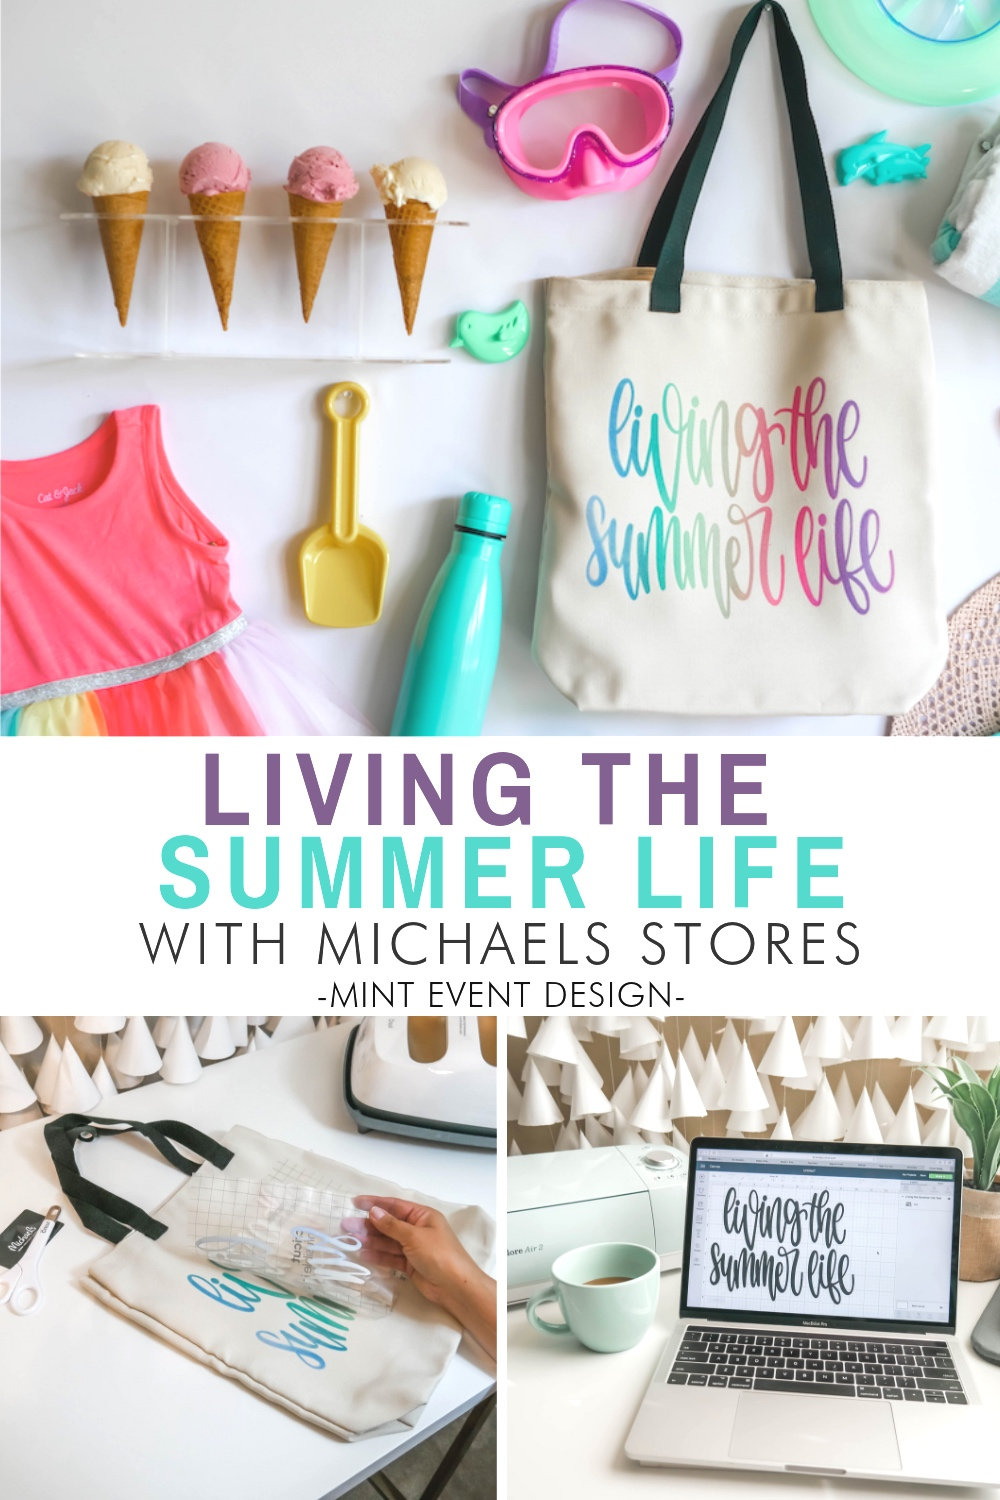 It's all about Living the Summer Life with this easy DIY Tote Bag using the new Cricut Infusible Ink Transfer Sheets. They are available exclusively at Michaels Stores. Come on over to Mint Event Design and I'll show you how to create your own Tote Bag for your summer outings. www.minteventdesign.com #cricut #cricutmade #cricutexplore #diycrafts #summercrafts #totebag #infusibleink